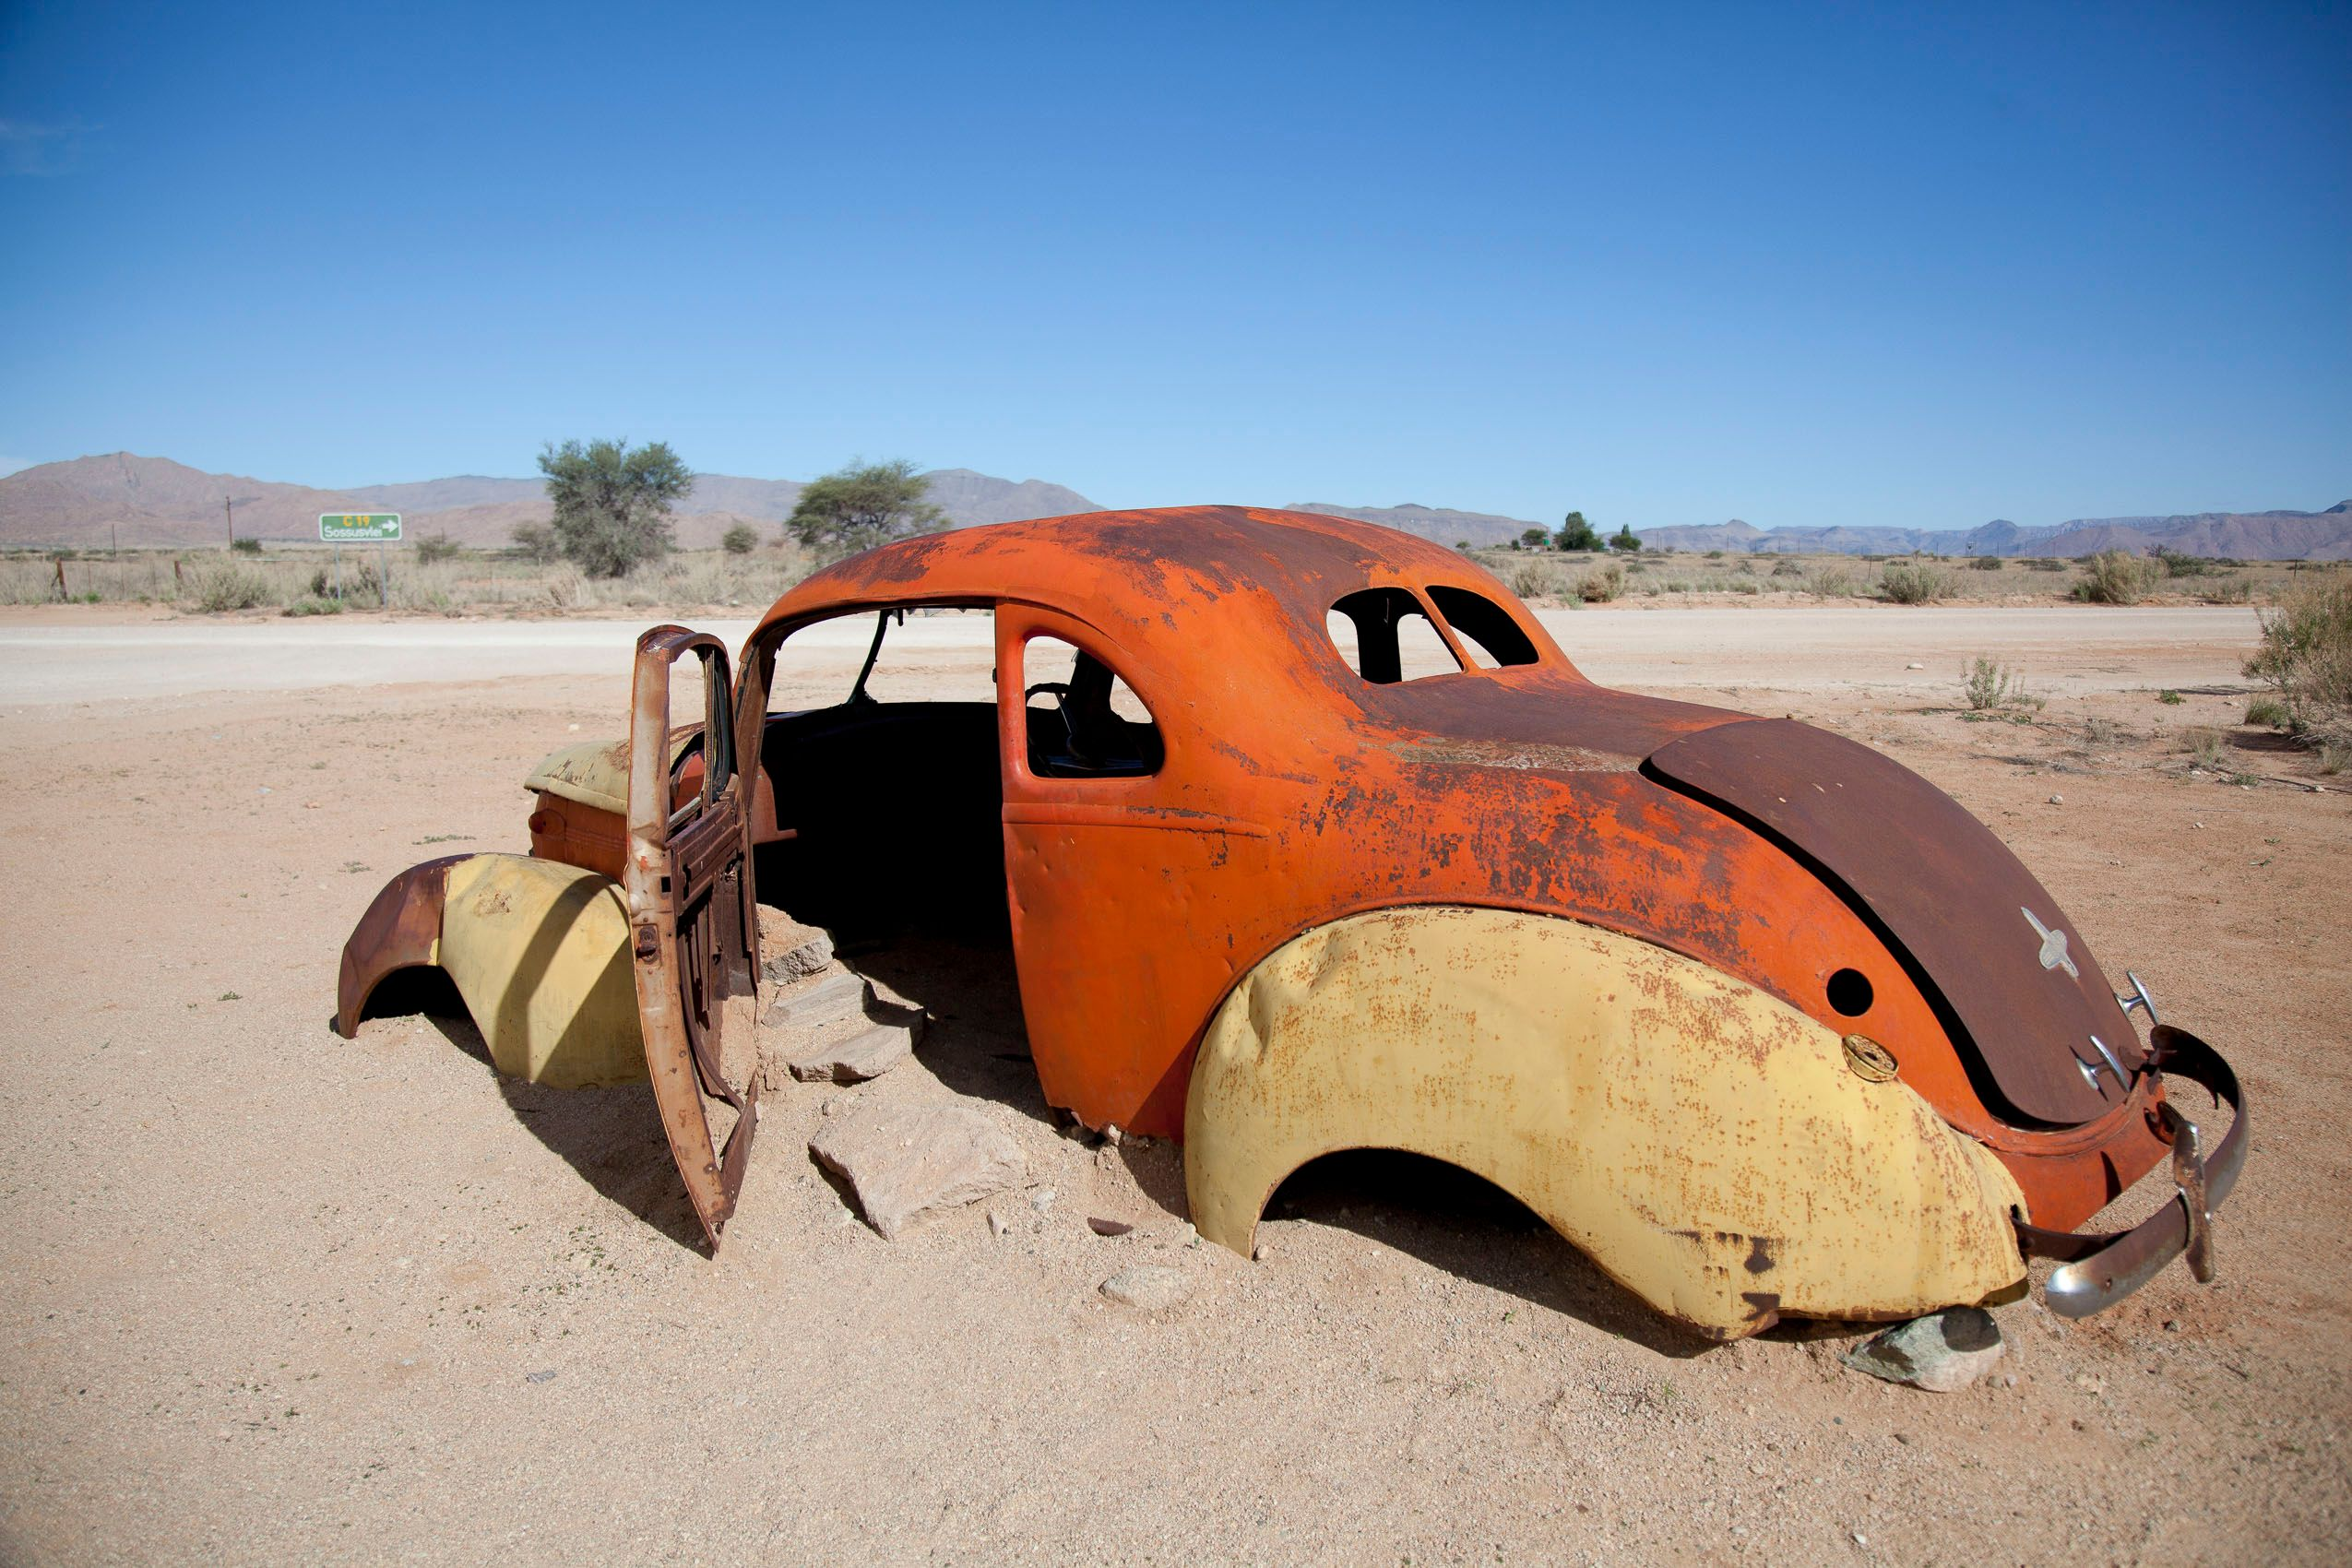 nambia_solitaire_abandoned_car_sand.jpg